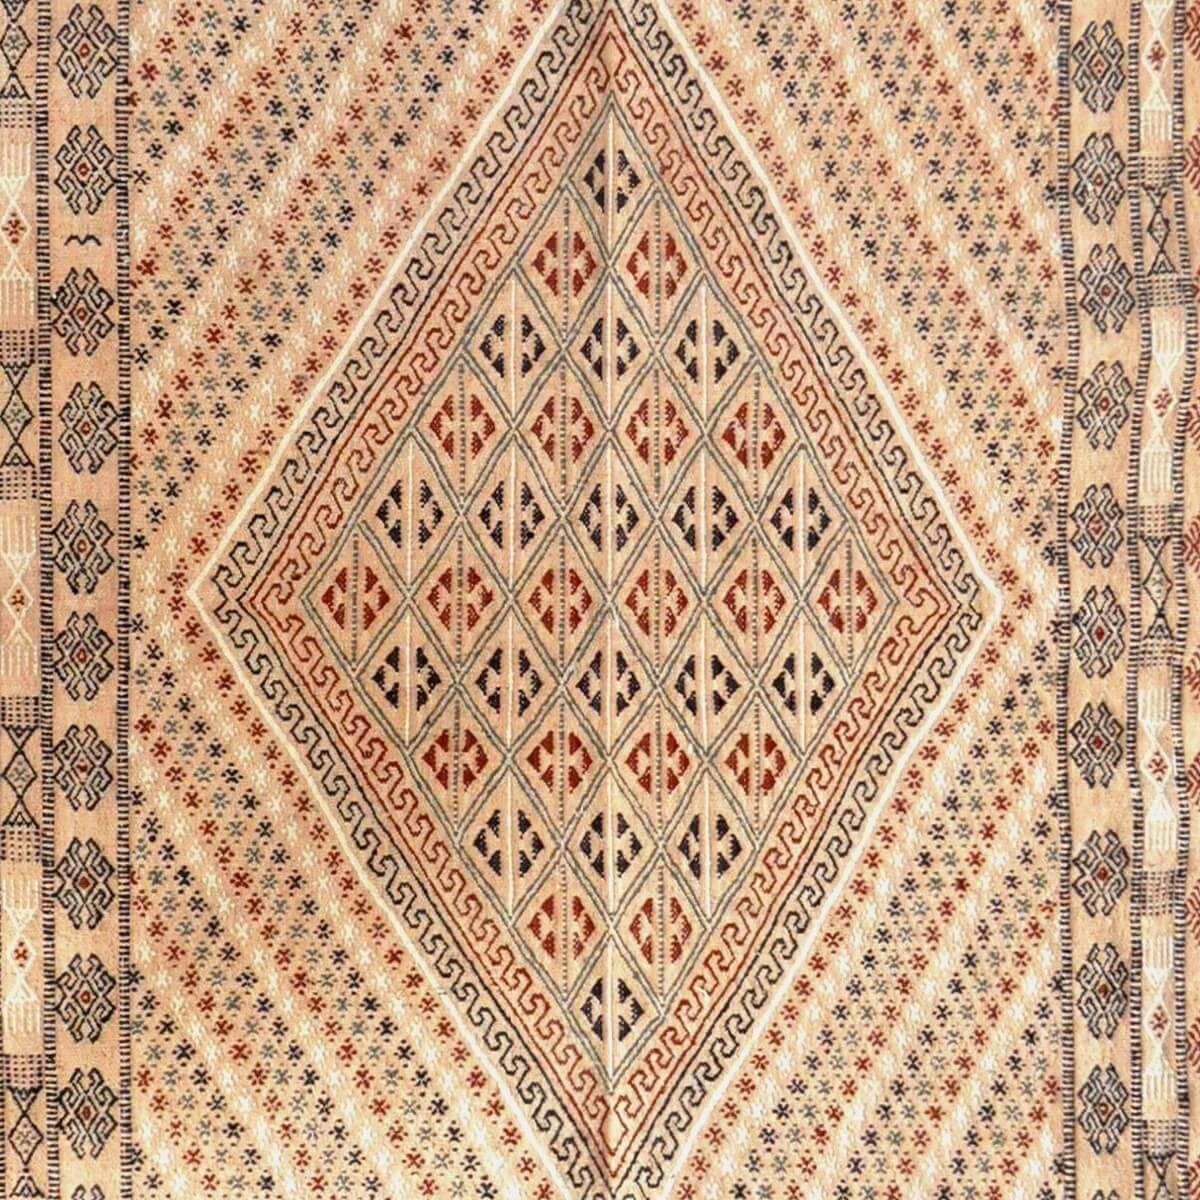 Berber carpet Large Rug Margoum Jilma 160x250 Beige (Handmade, Wool) Tunisian margoum rug from the city of Kairouan. Rectangular